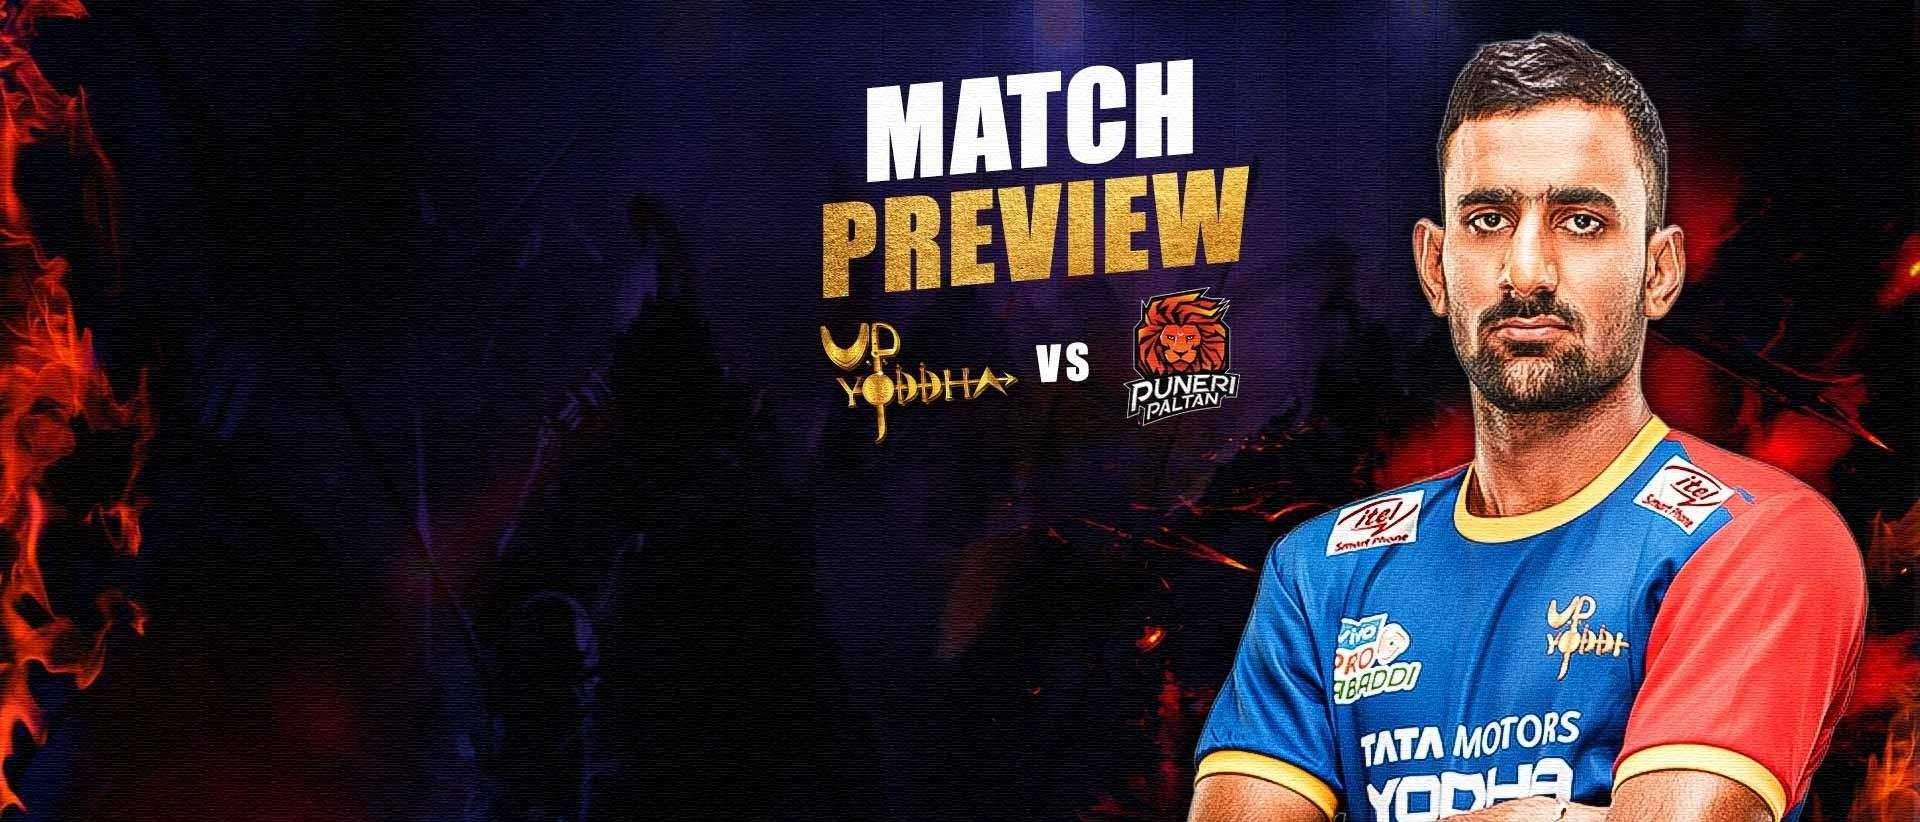 Yoddha hope to continue winning run against the Paltan in this Super Sunday encounter